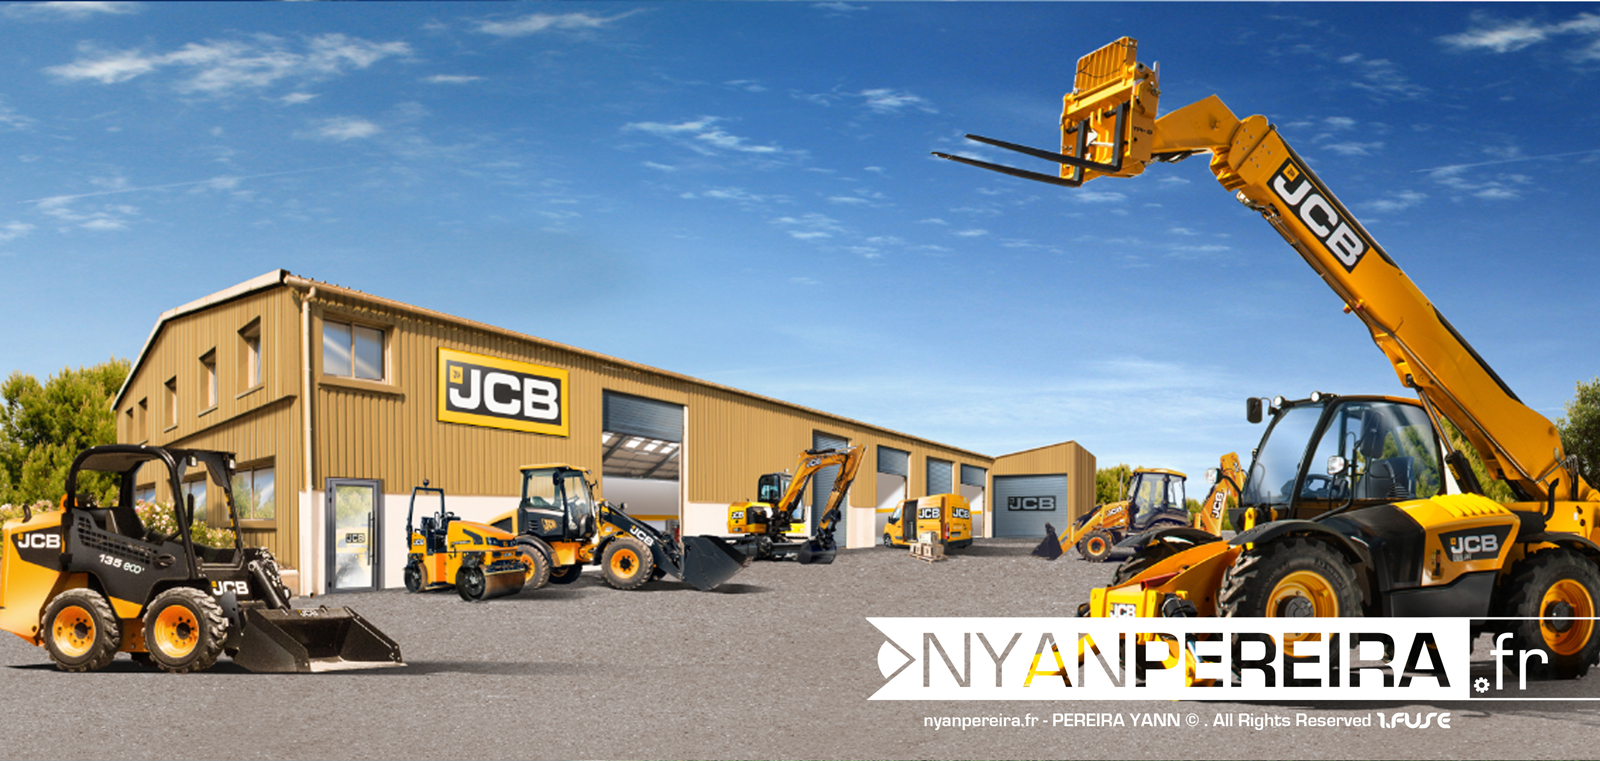 1.jcb.concession.photomontage.photographe.pro.machine.engin.